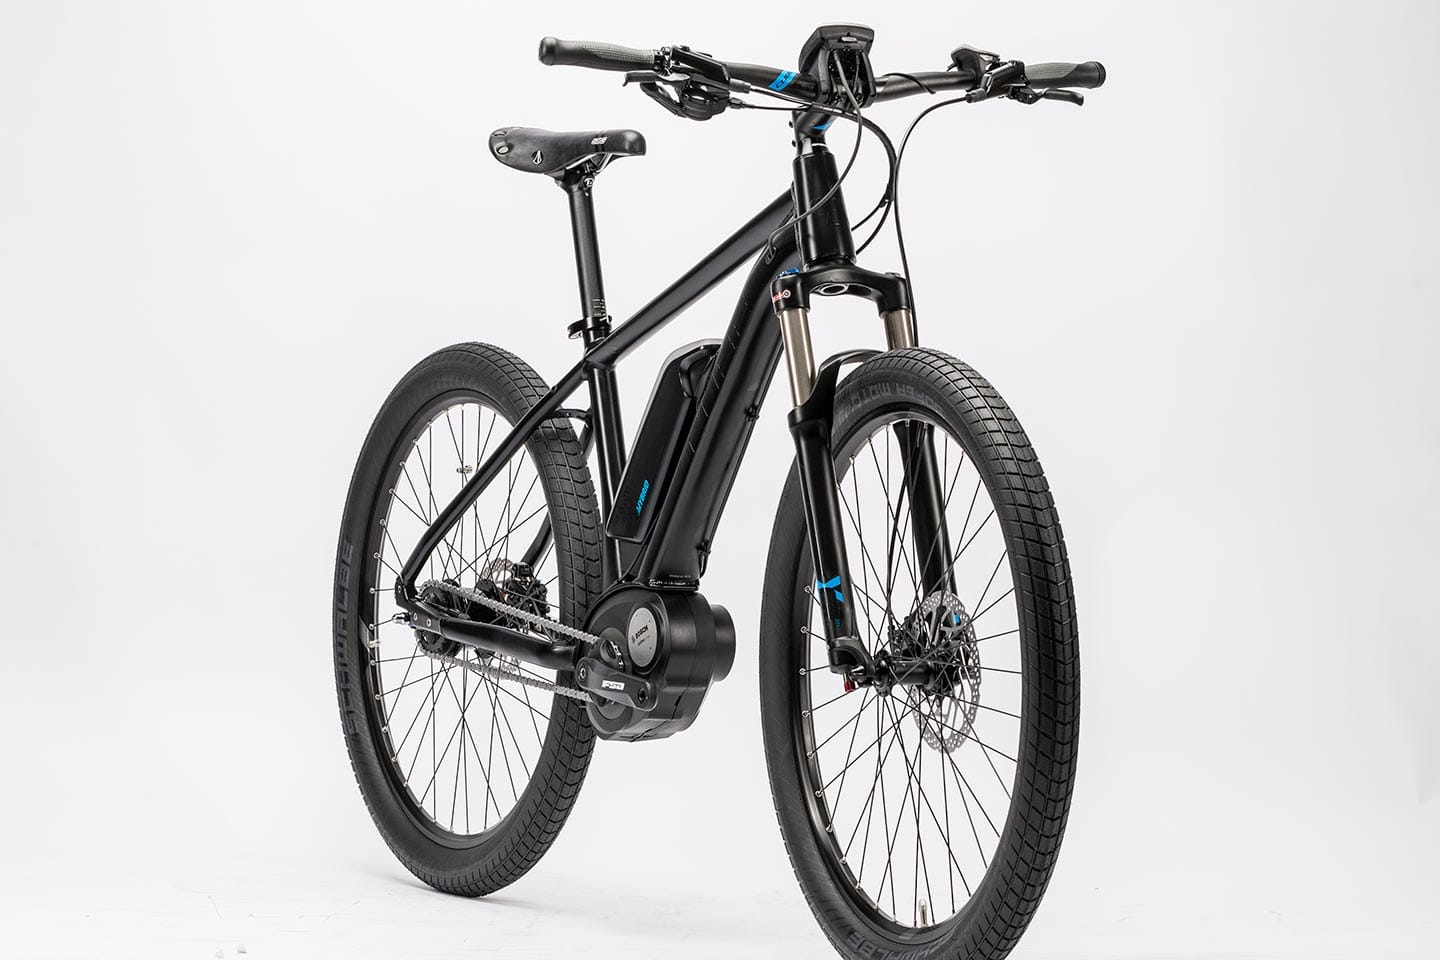 cube suv hybrid pro 500 electric 27 5 urban bike 2016. Black Bedroom Furniture Sets. Home Design Ideas